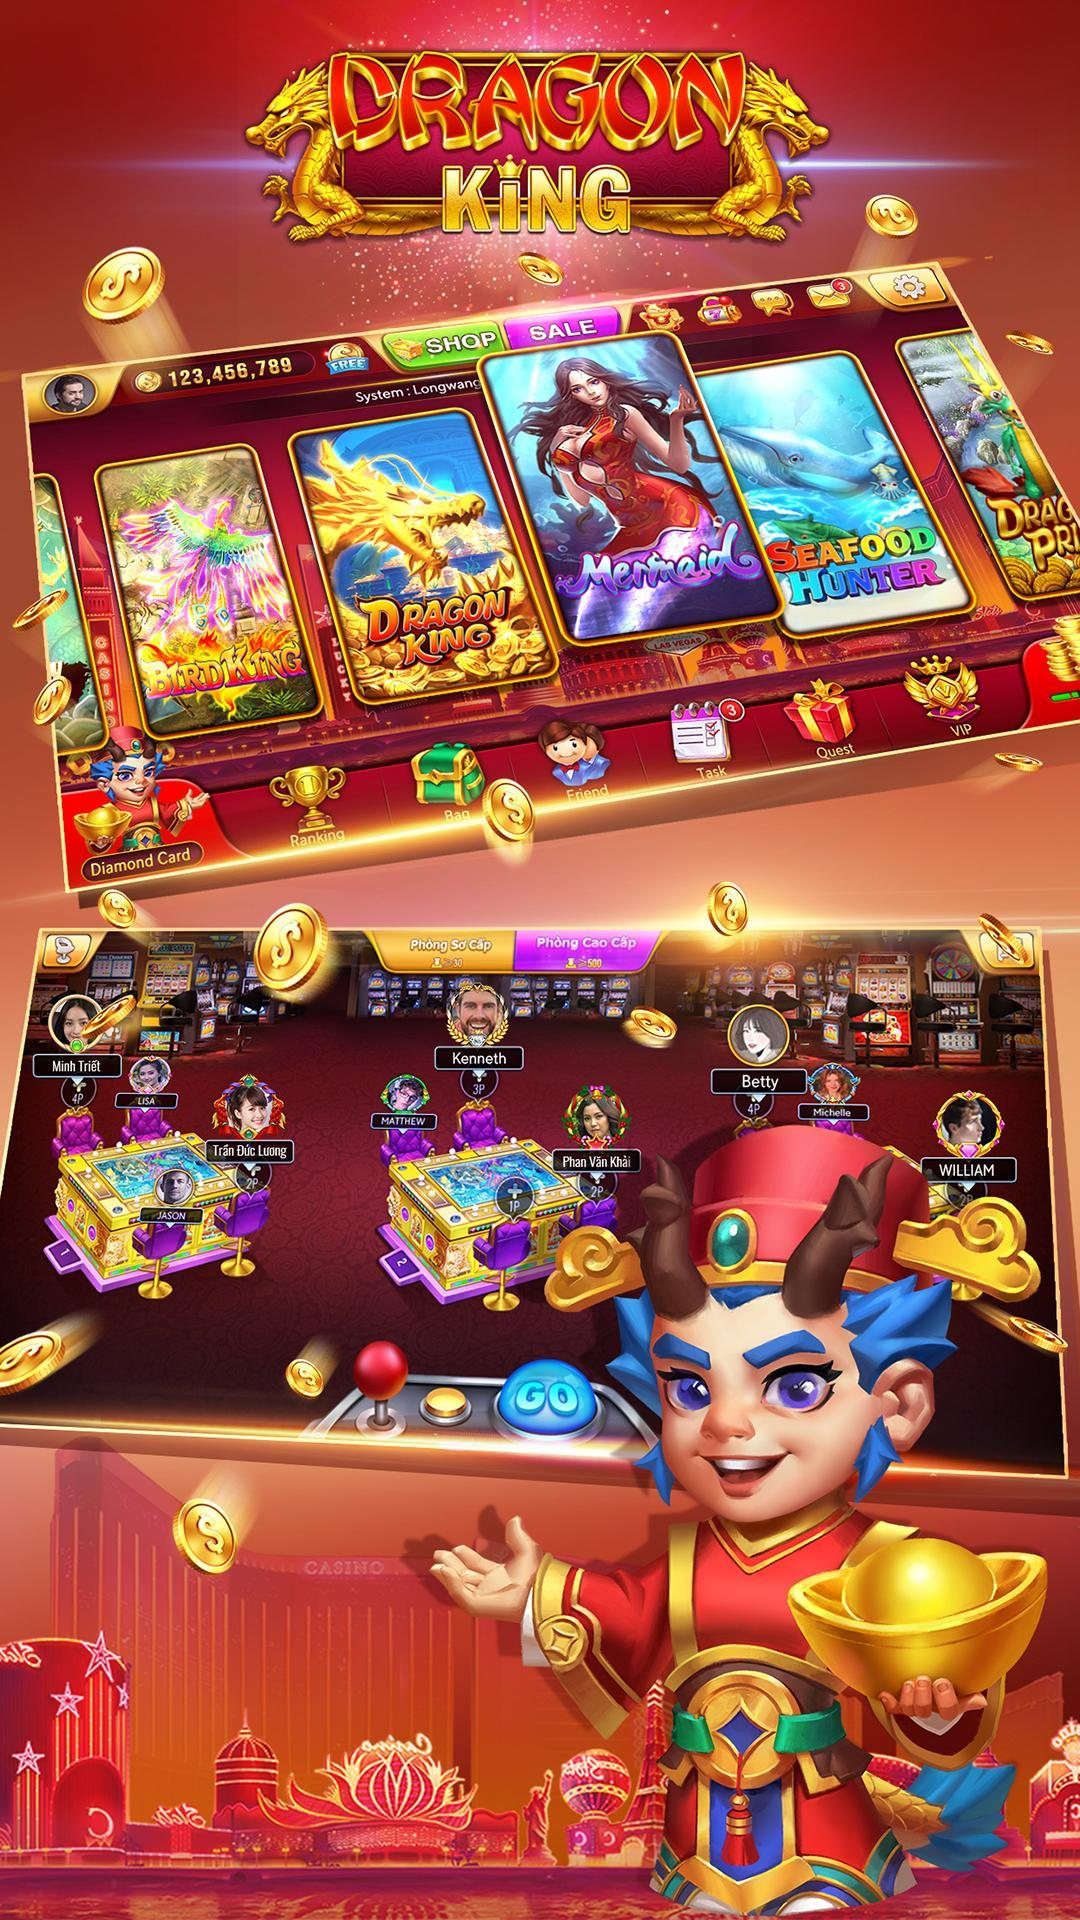 Dragon King Fishing Online-Arcade  Fish Games 5.2.0 Screenshot 15